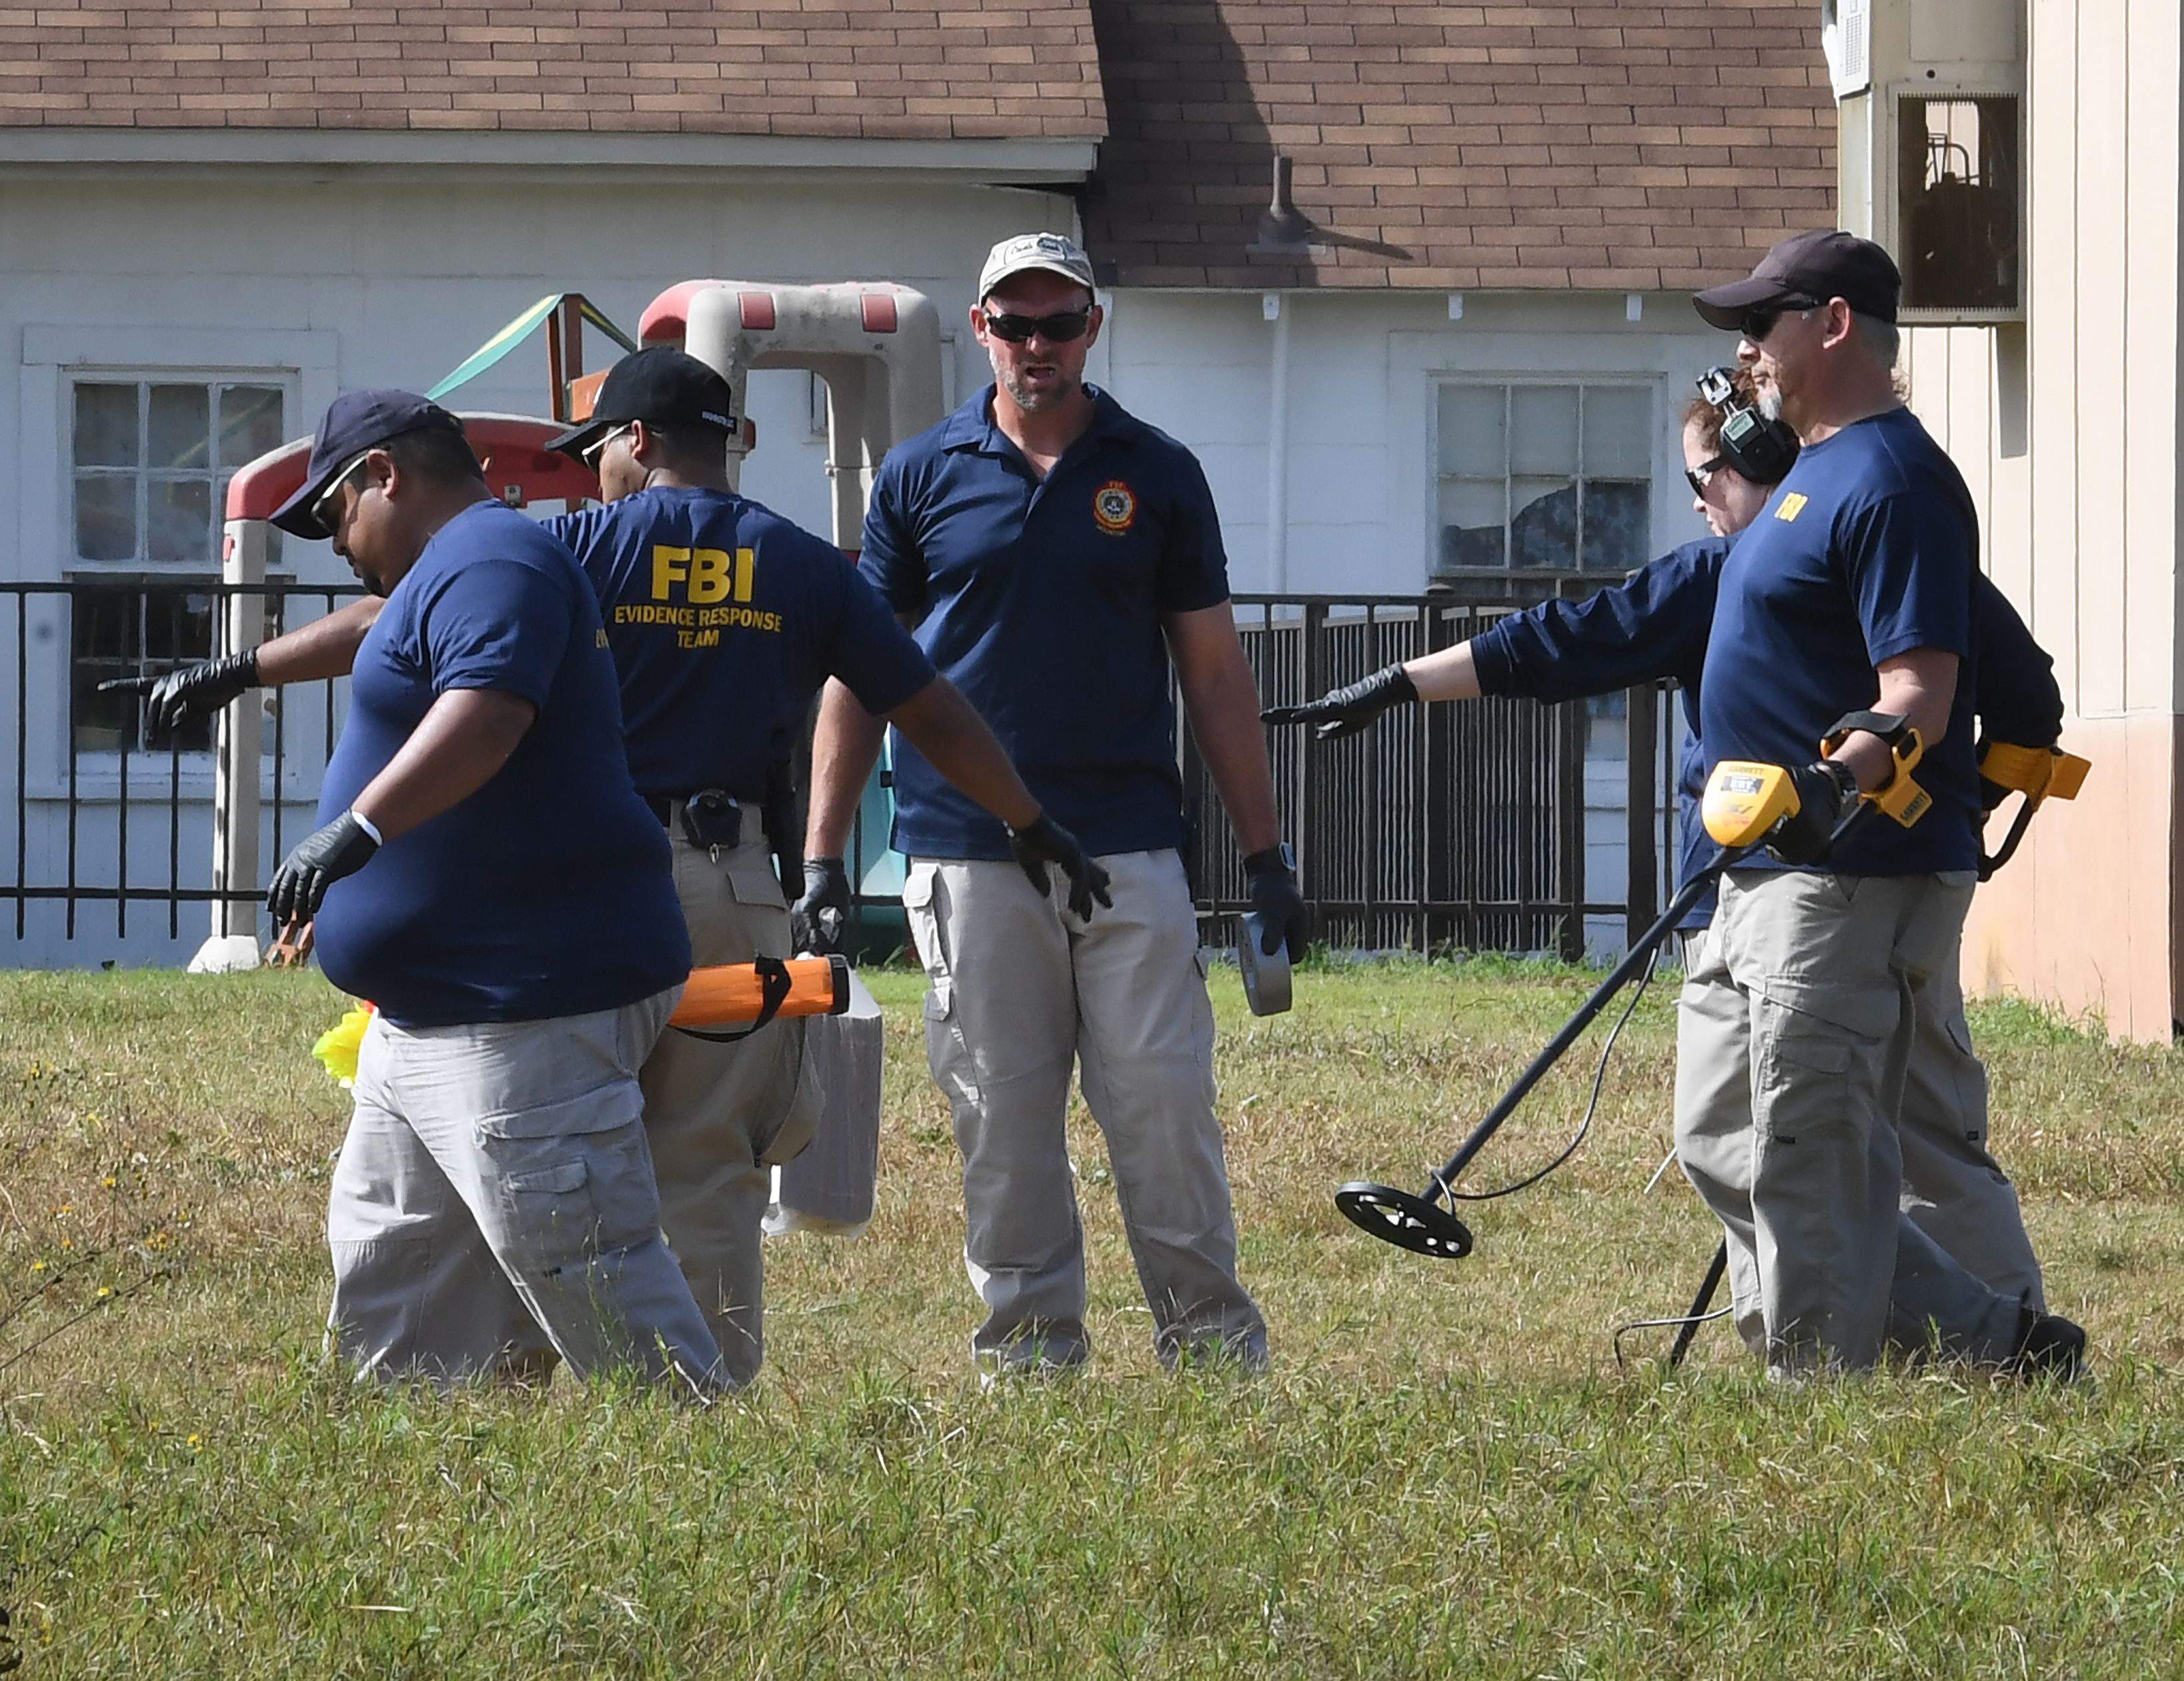 <div class='meta'><div class='origin-logo' data-origin='none'></div><span class='caption-text' data-credit='MARK RALSTON/AFP/Getty Images'>FBI agents search for clues at the entrance to the First Baptist Church, after a mass shooting that killed 26 people in Sutherland Springs, Texas on November 6, 2017.</span></div>